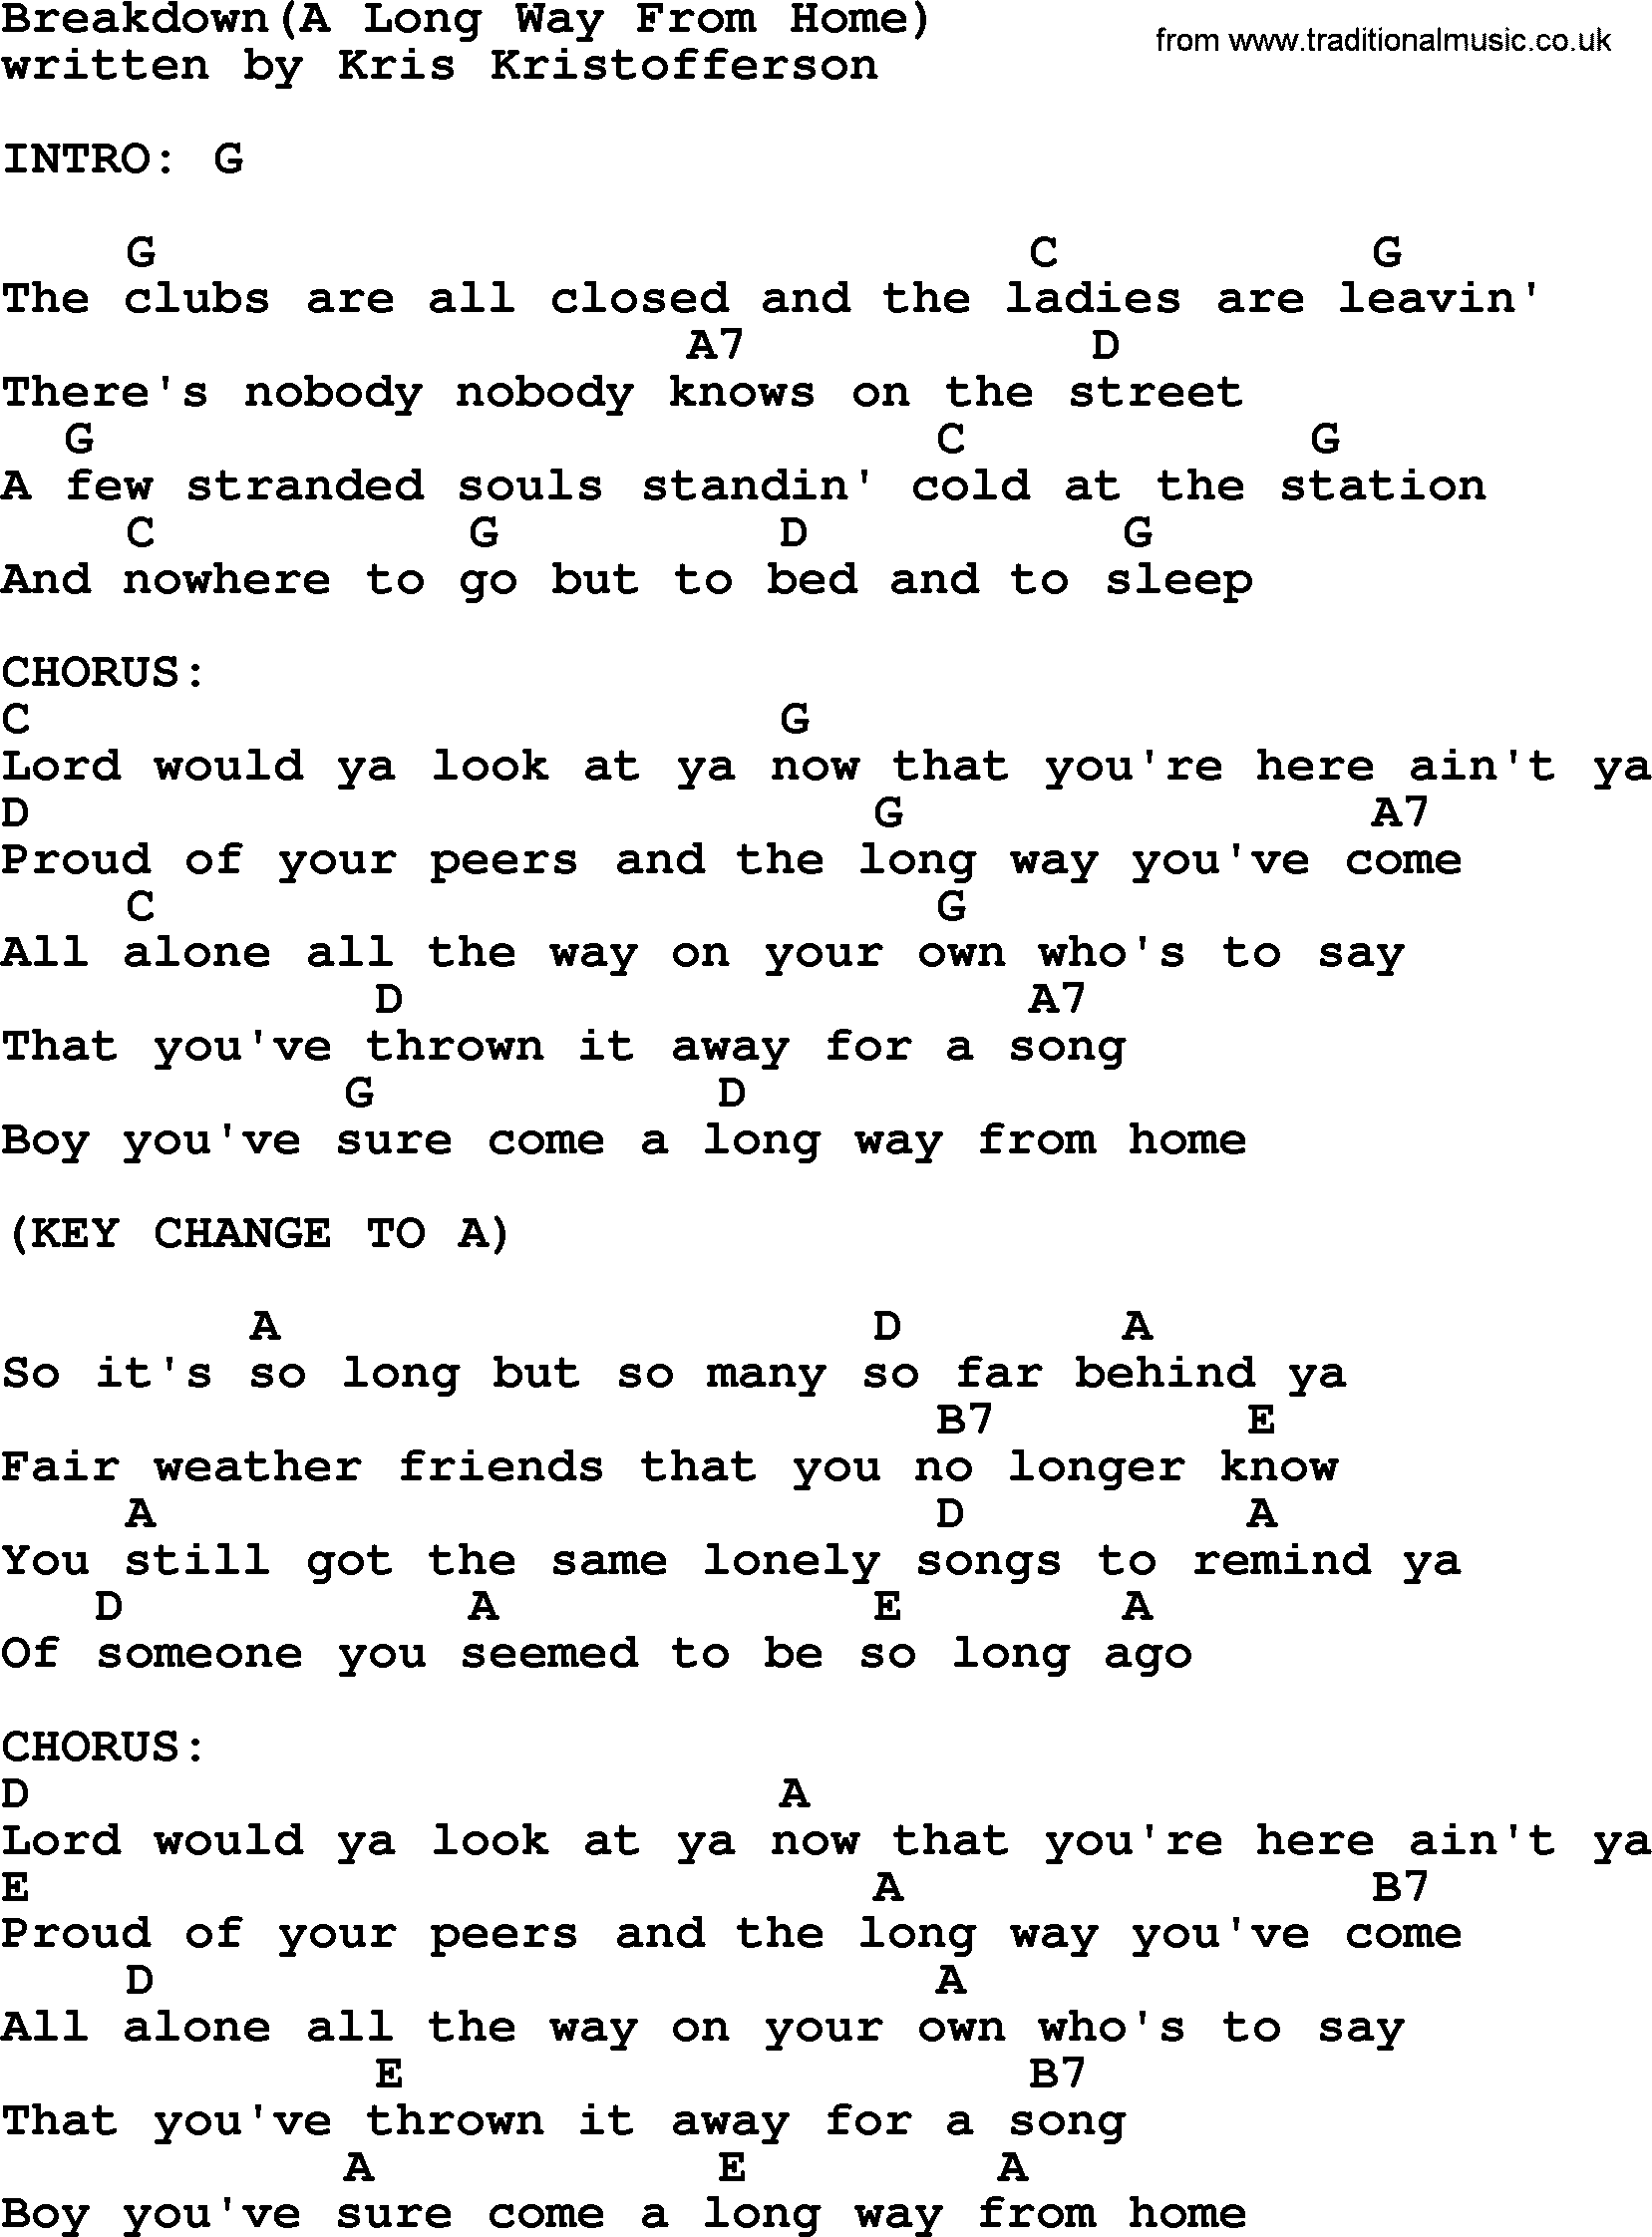 Kris Kristofferson Song Breakdowna Long Way From Home Lyrics And